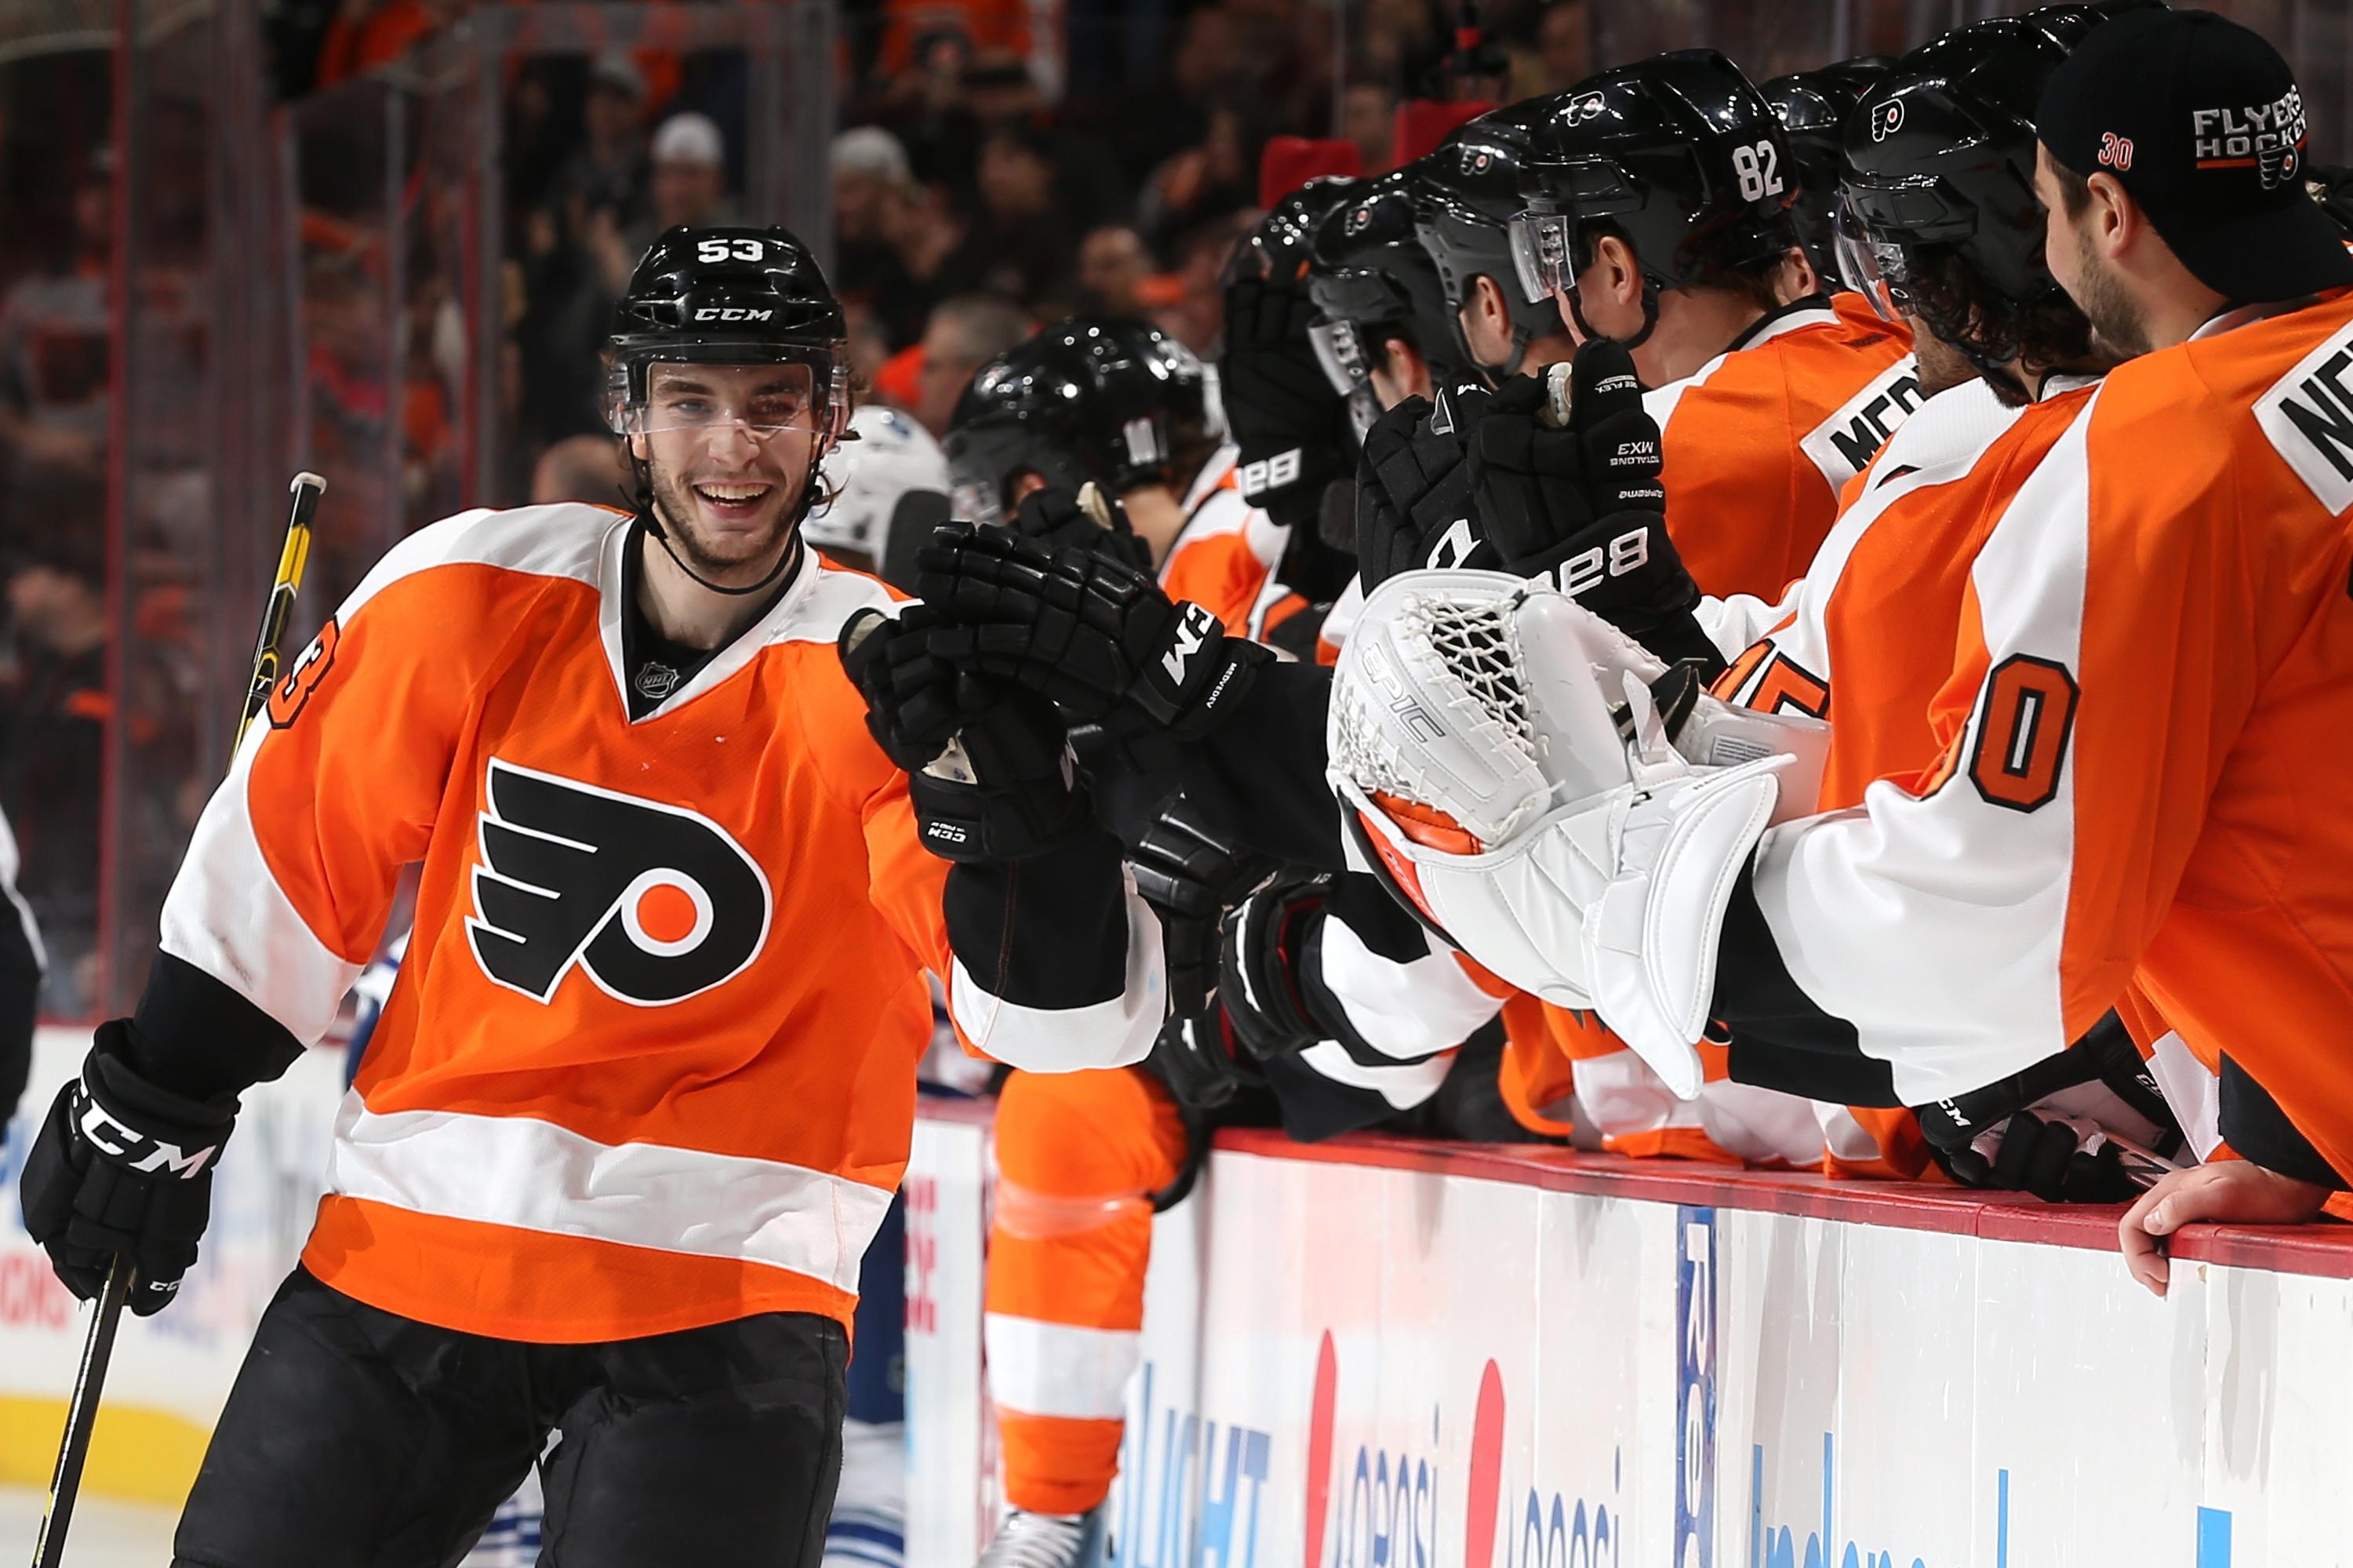 Gostisbehere sets rookie record, then speared in groin (Video)